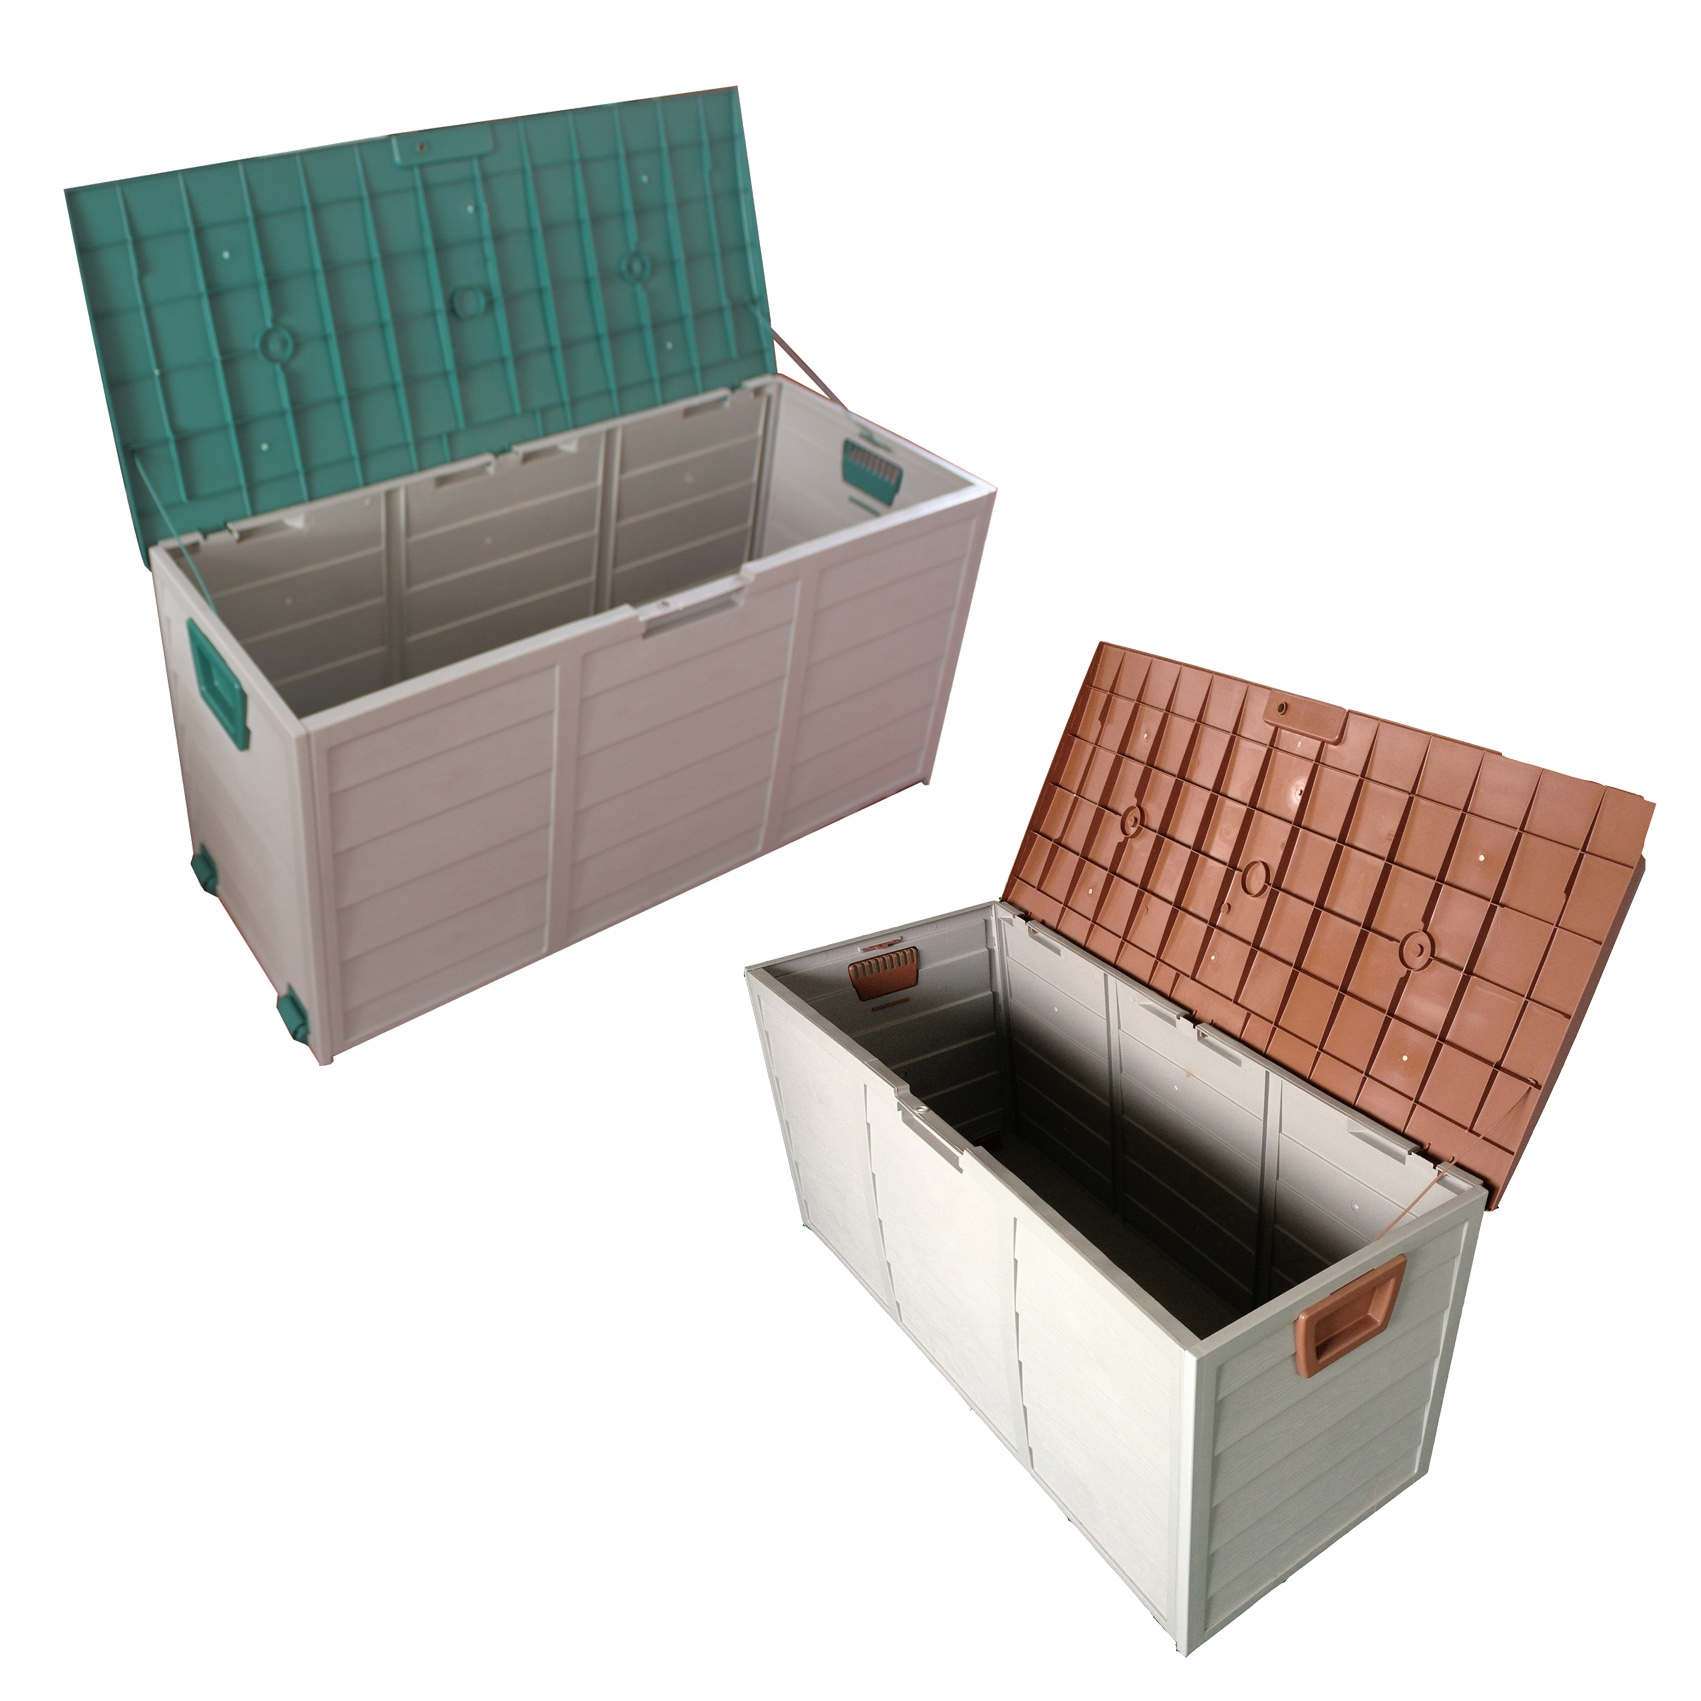 Suncast Wicker Deck Box | Rubbermaid Storage Bench | Wooden Deck Box